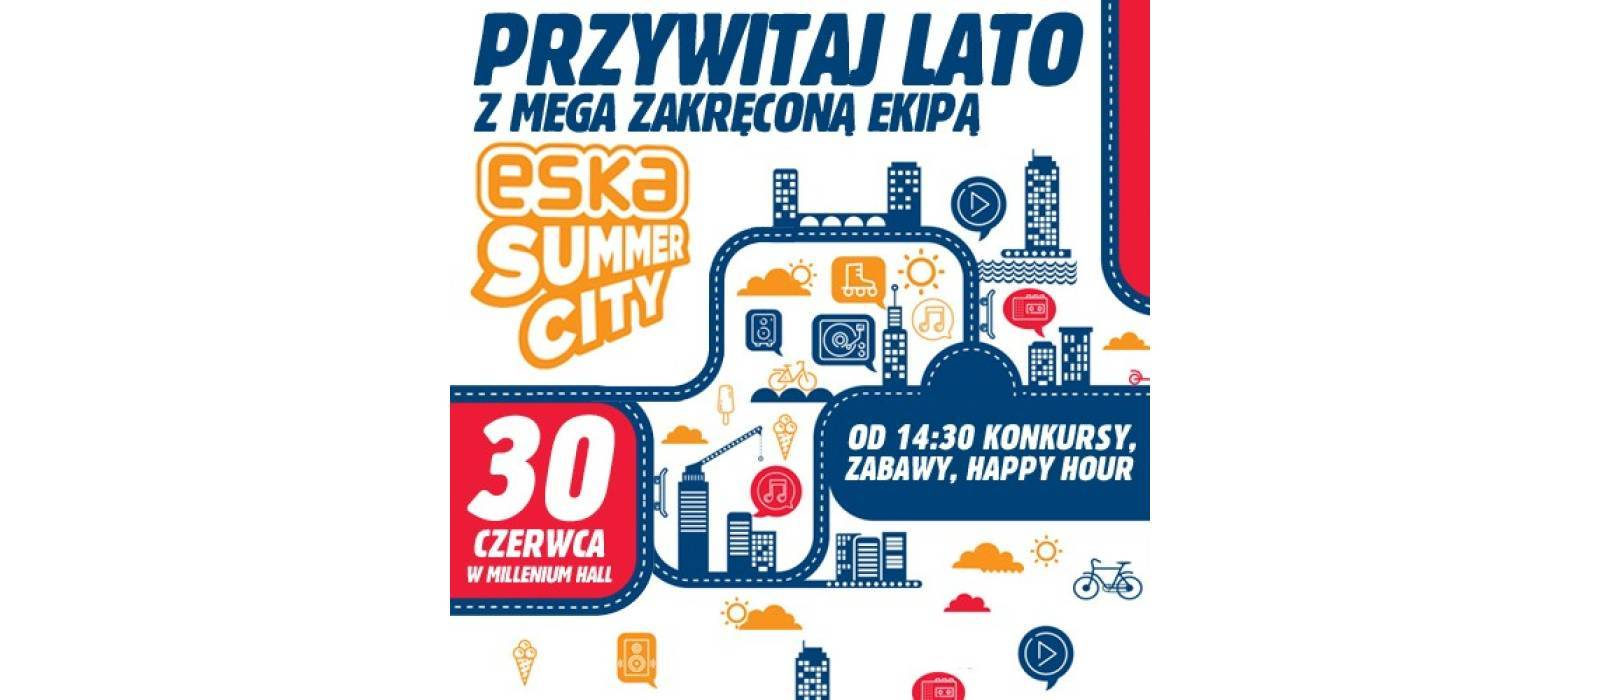 Eska Summer City w Millenium Hall - 1